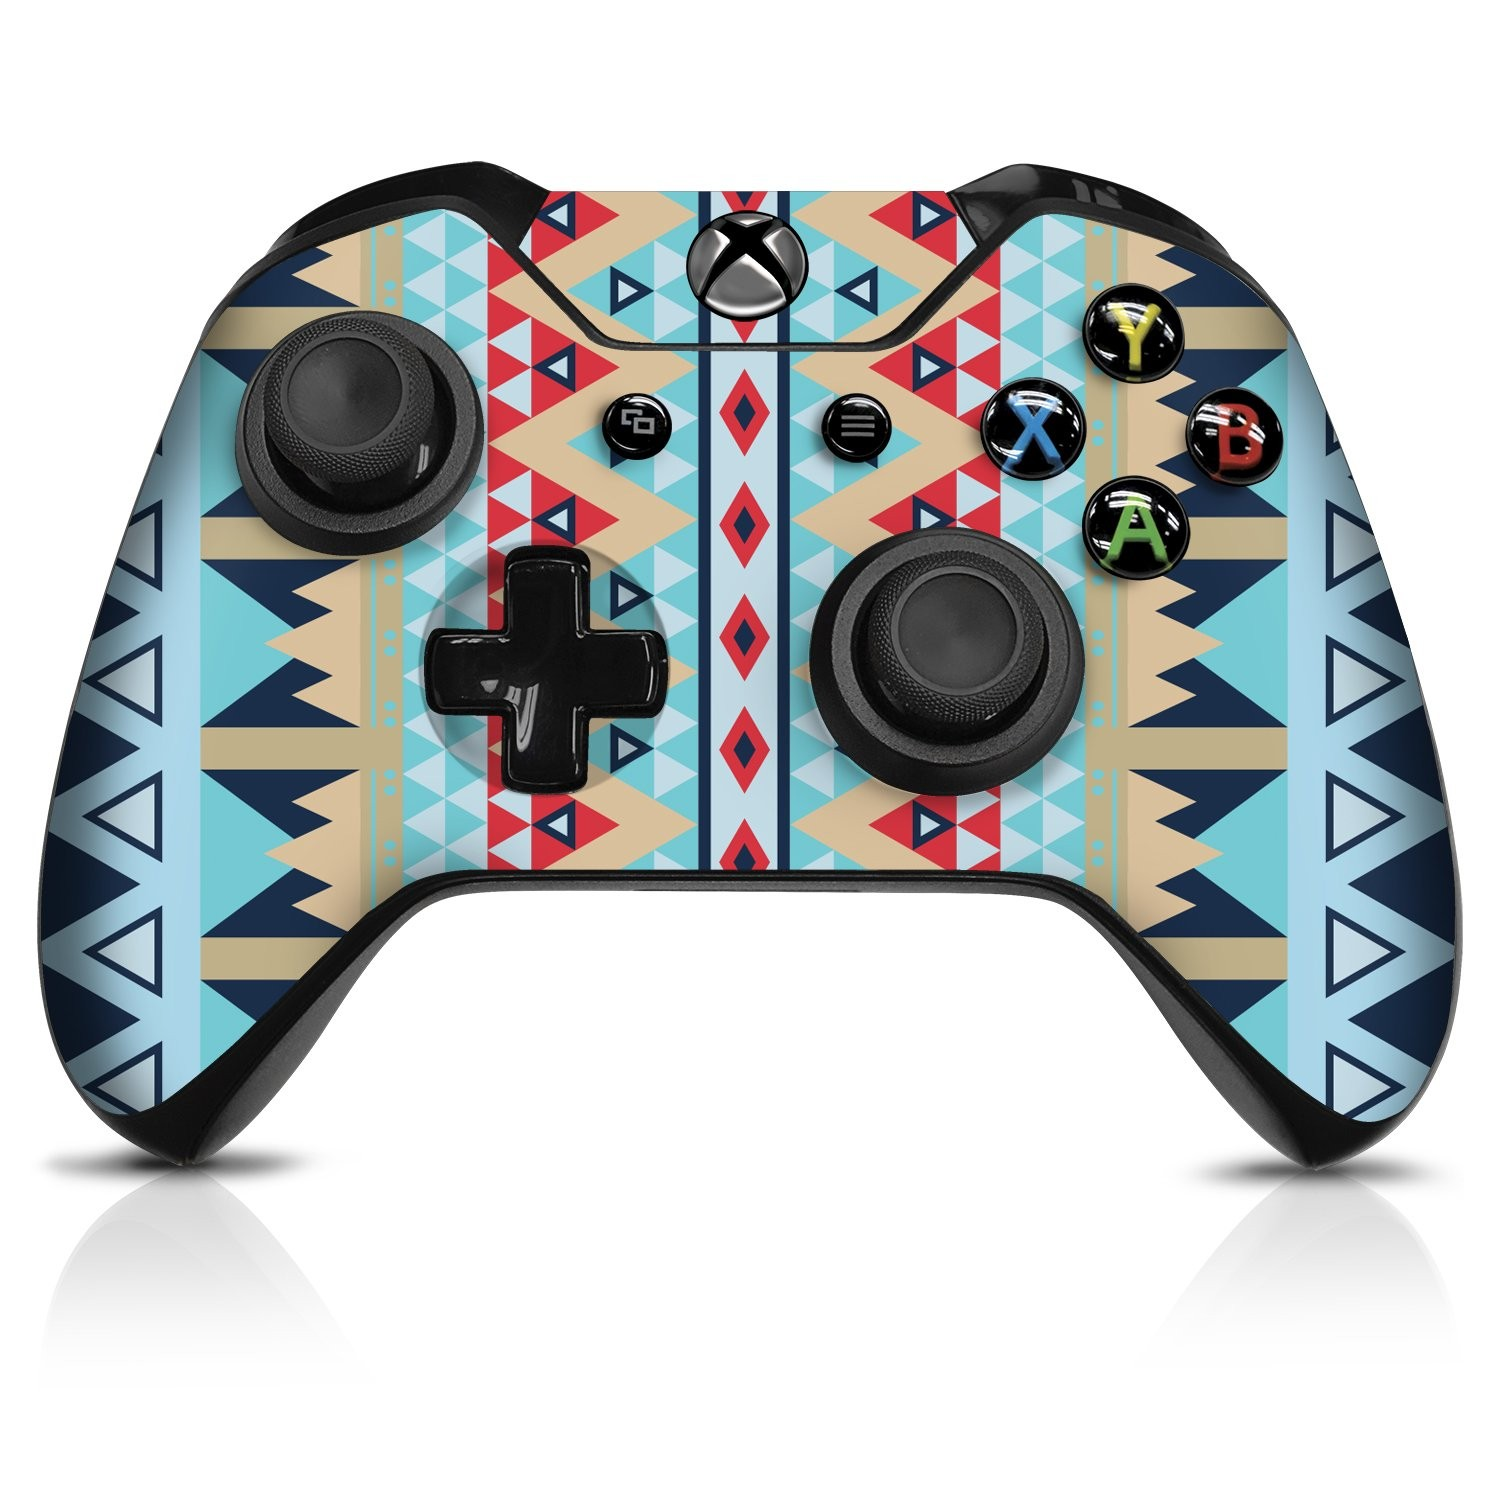 South Western  Xbox One Controller Skin - Officially Licensed by Xbox - Controller Gear